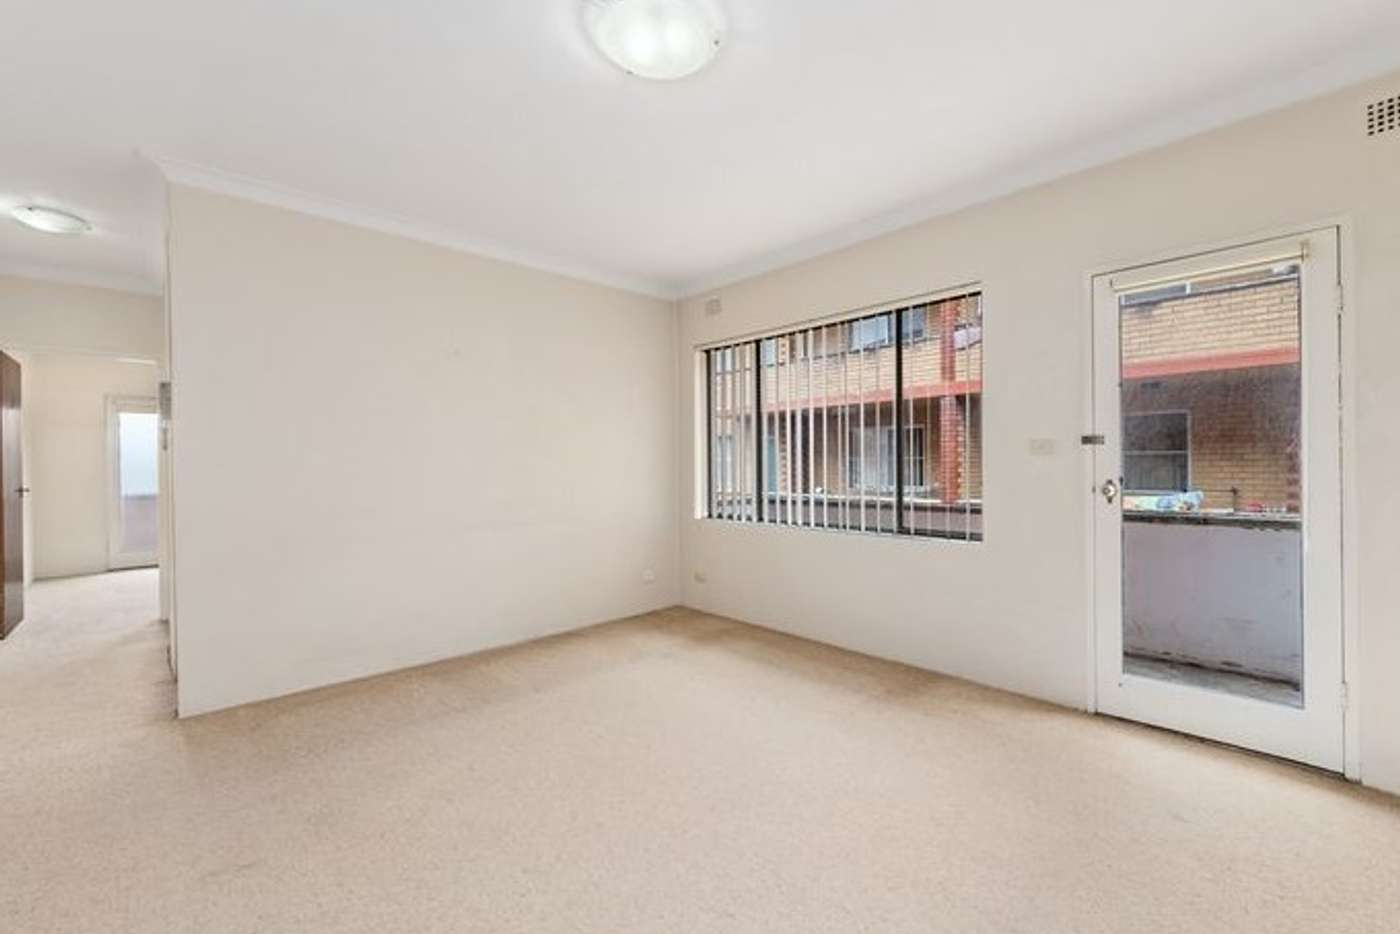 Main view of Homely apartment listing, 6/19 Loftus Street, Ashfield NSW 2131